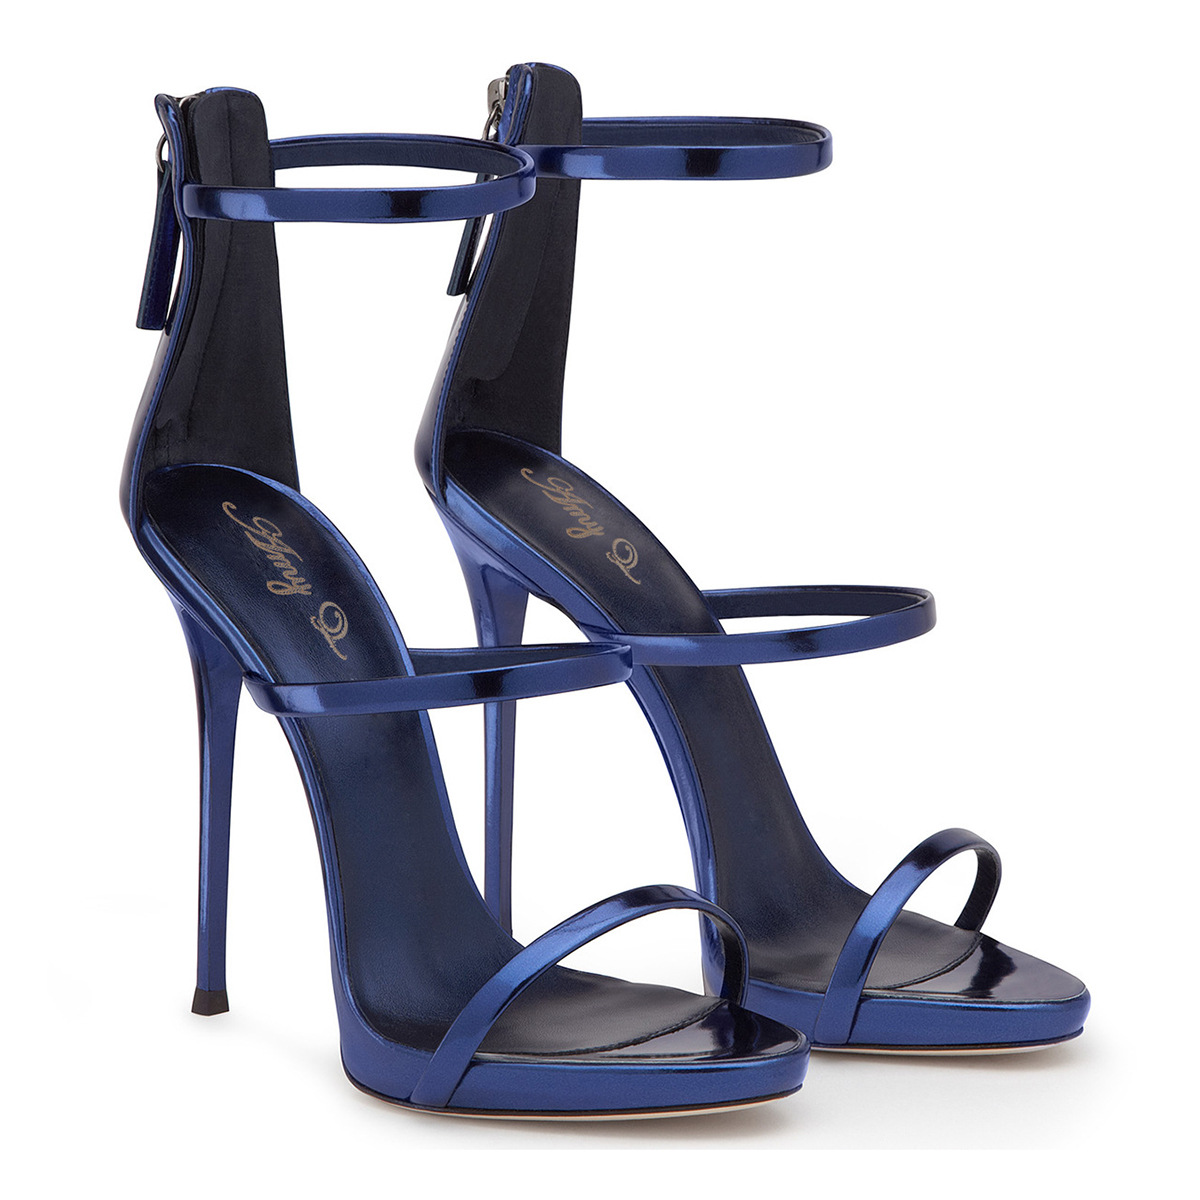 In the summer of 2018, Europe and the United States new bright leather open back with high heel ladies sandals.In the summer of 2018, Europe and the United States new bright leather open back with high heel ladies sandals.